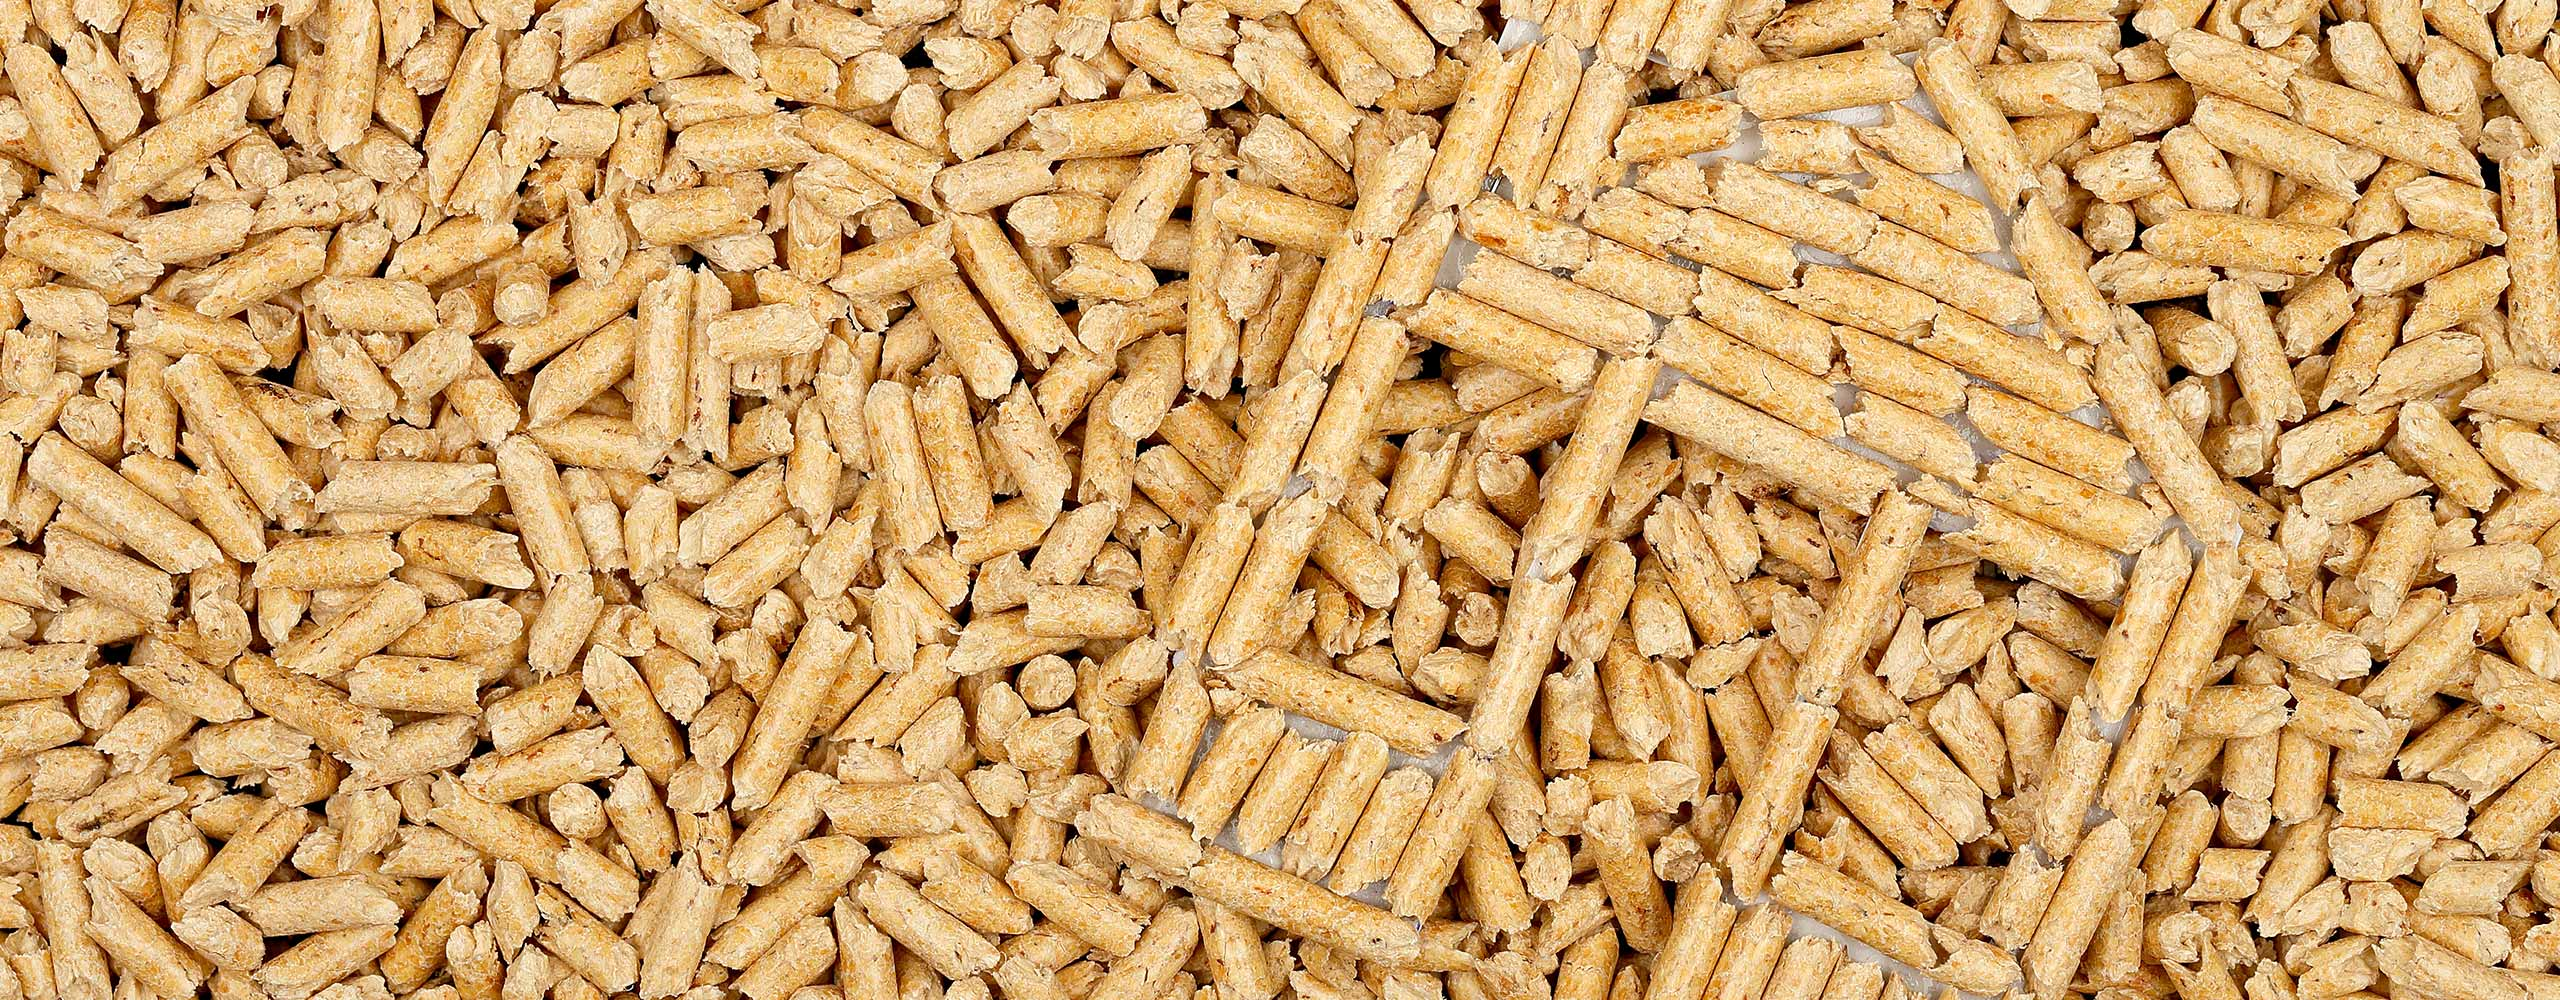 1 Ton Of Wood Pellets Price